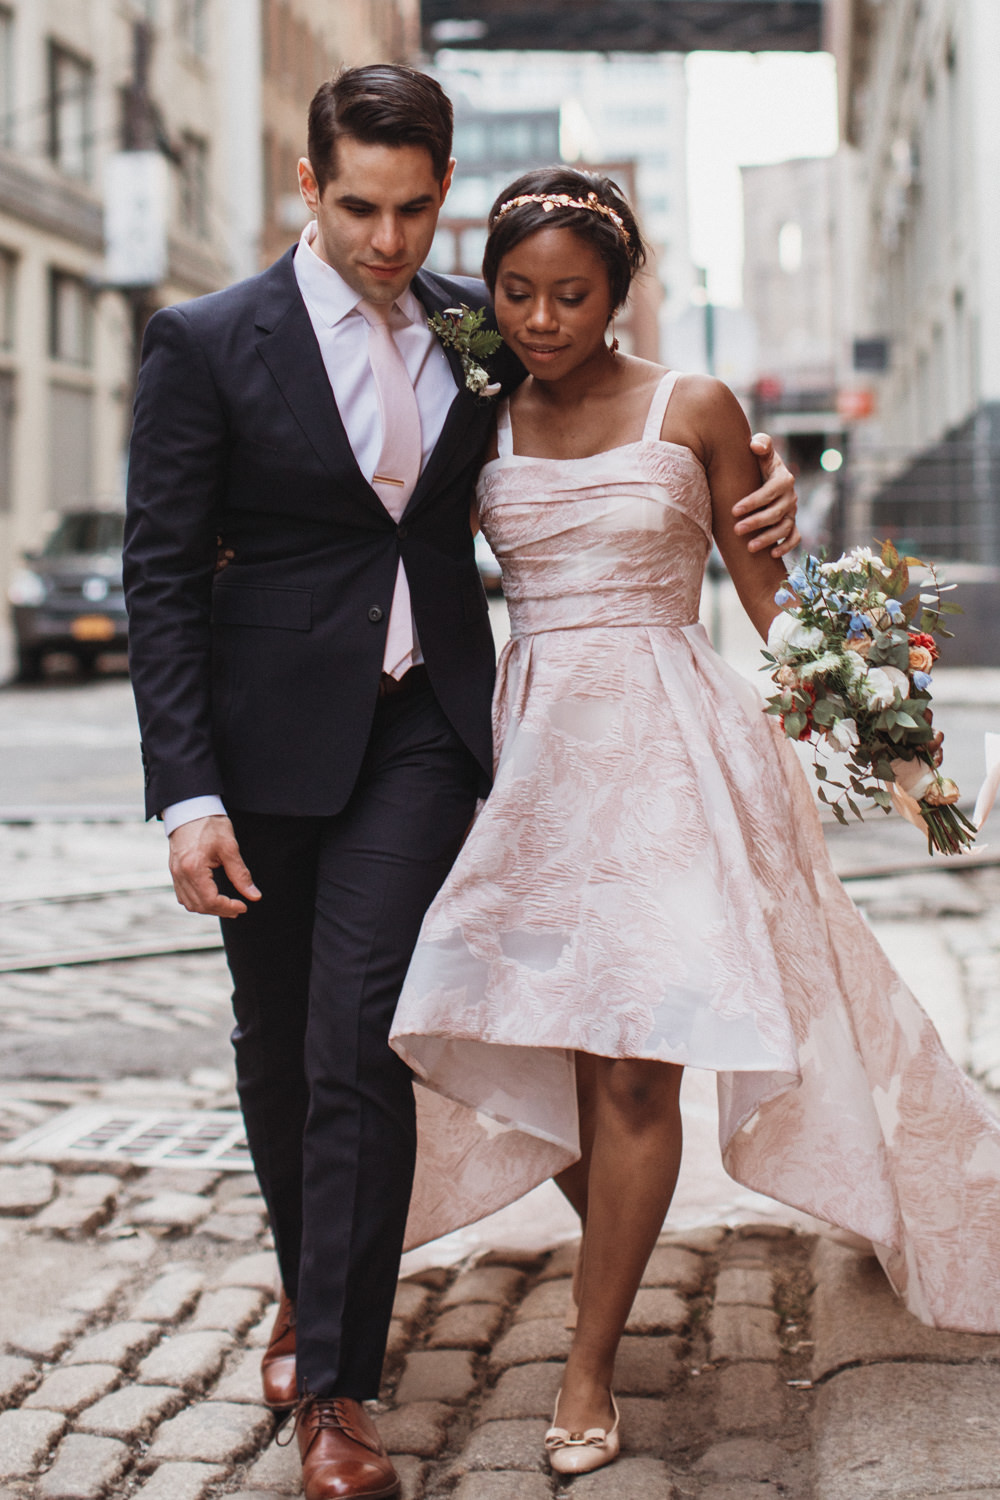 Wedding Photos - Bride and Groom walks down cobblestone streets in DUMBO